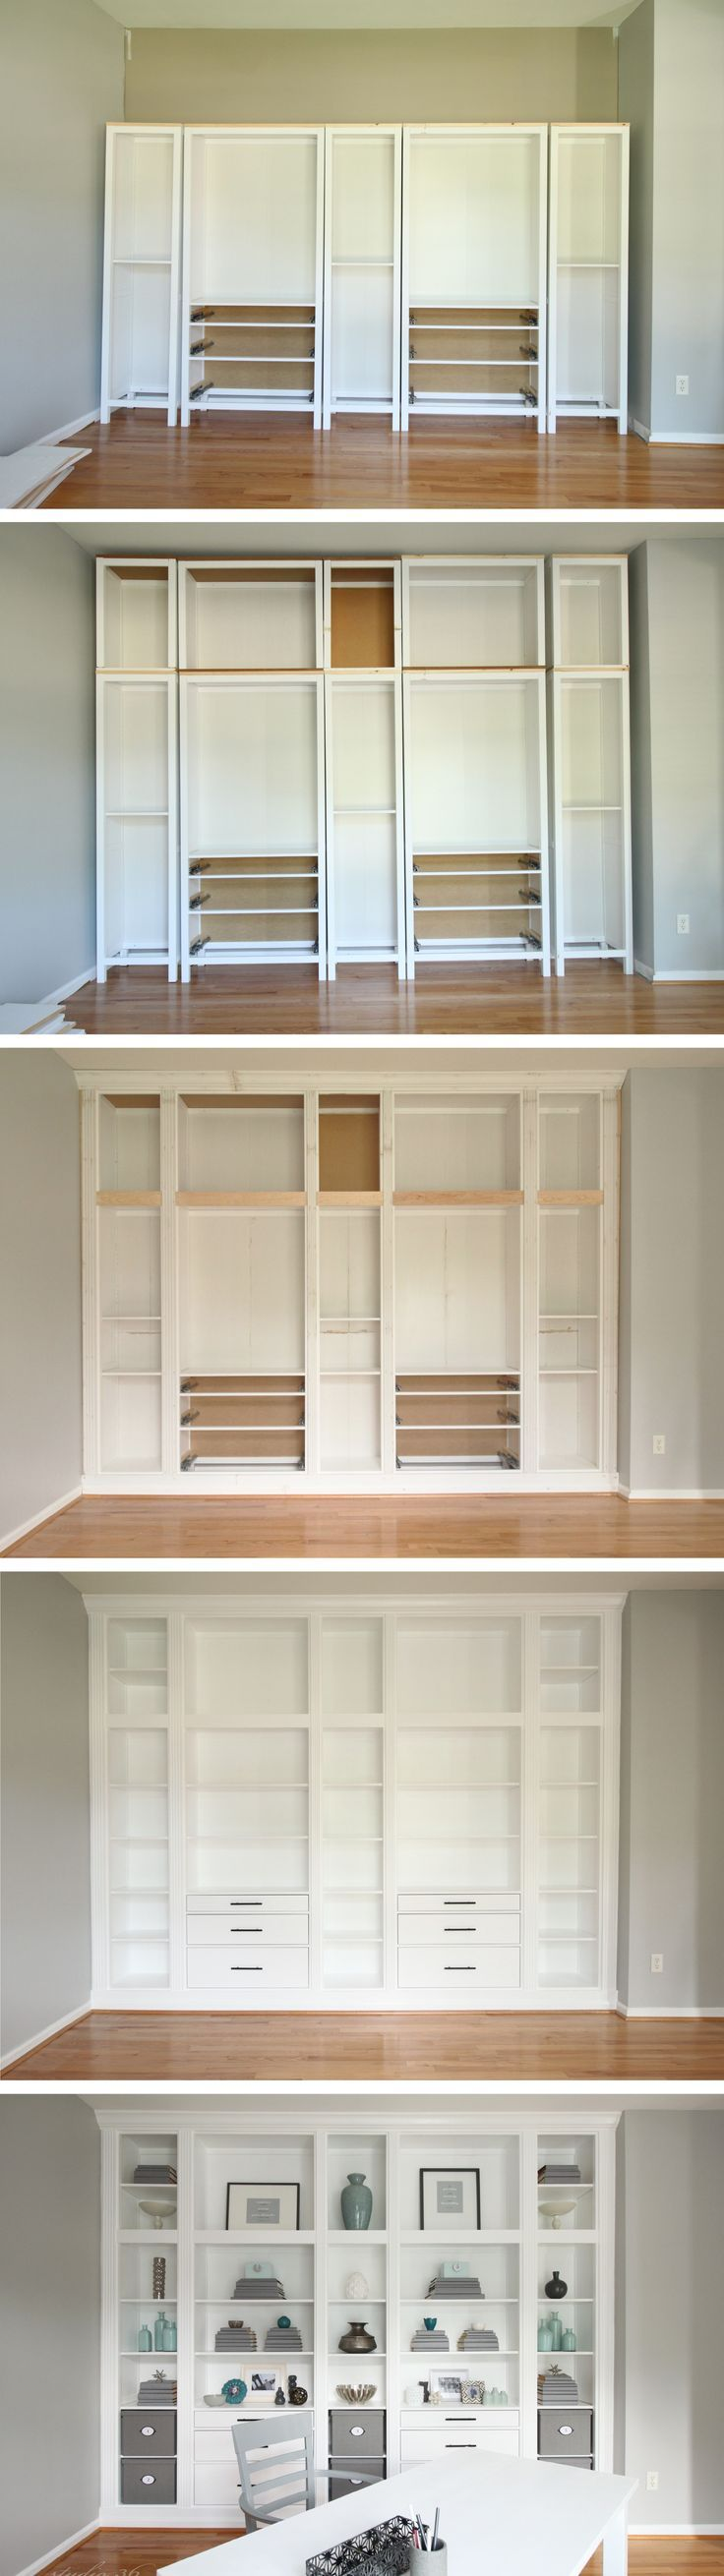 DIY Built-in Bookcases made with Ikea Hemnes Furniture #home #décoration #maison #etagere